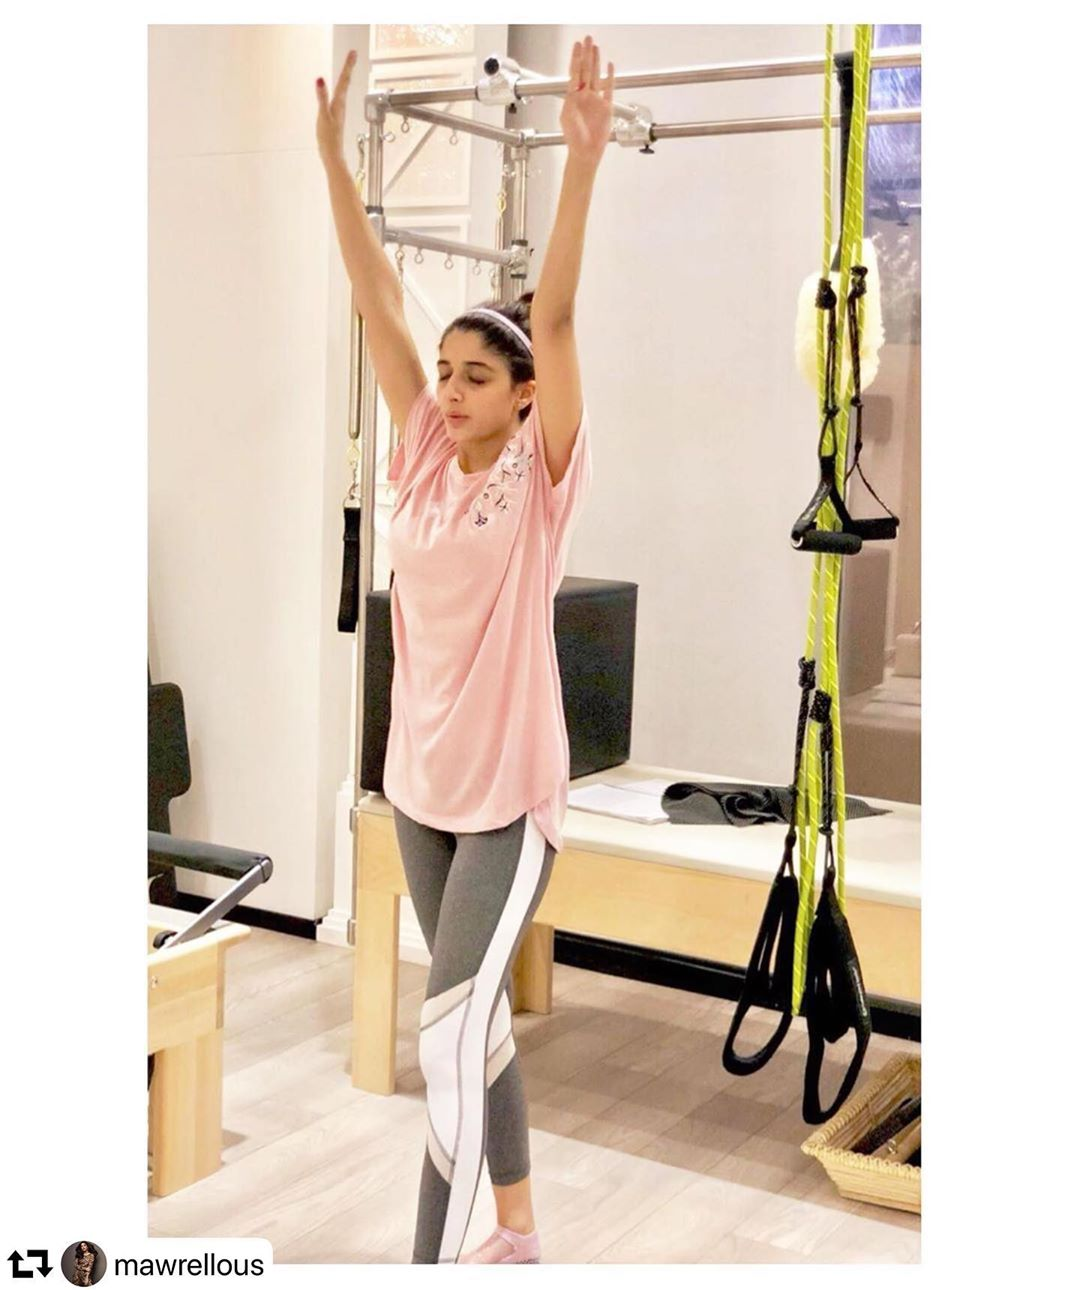 Pictures of Actress Mawra Hocane Workout in Gym